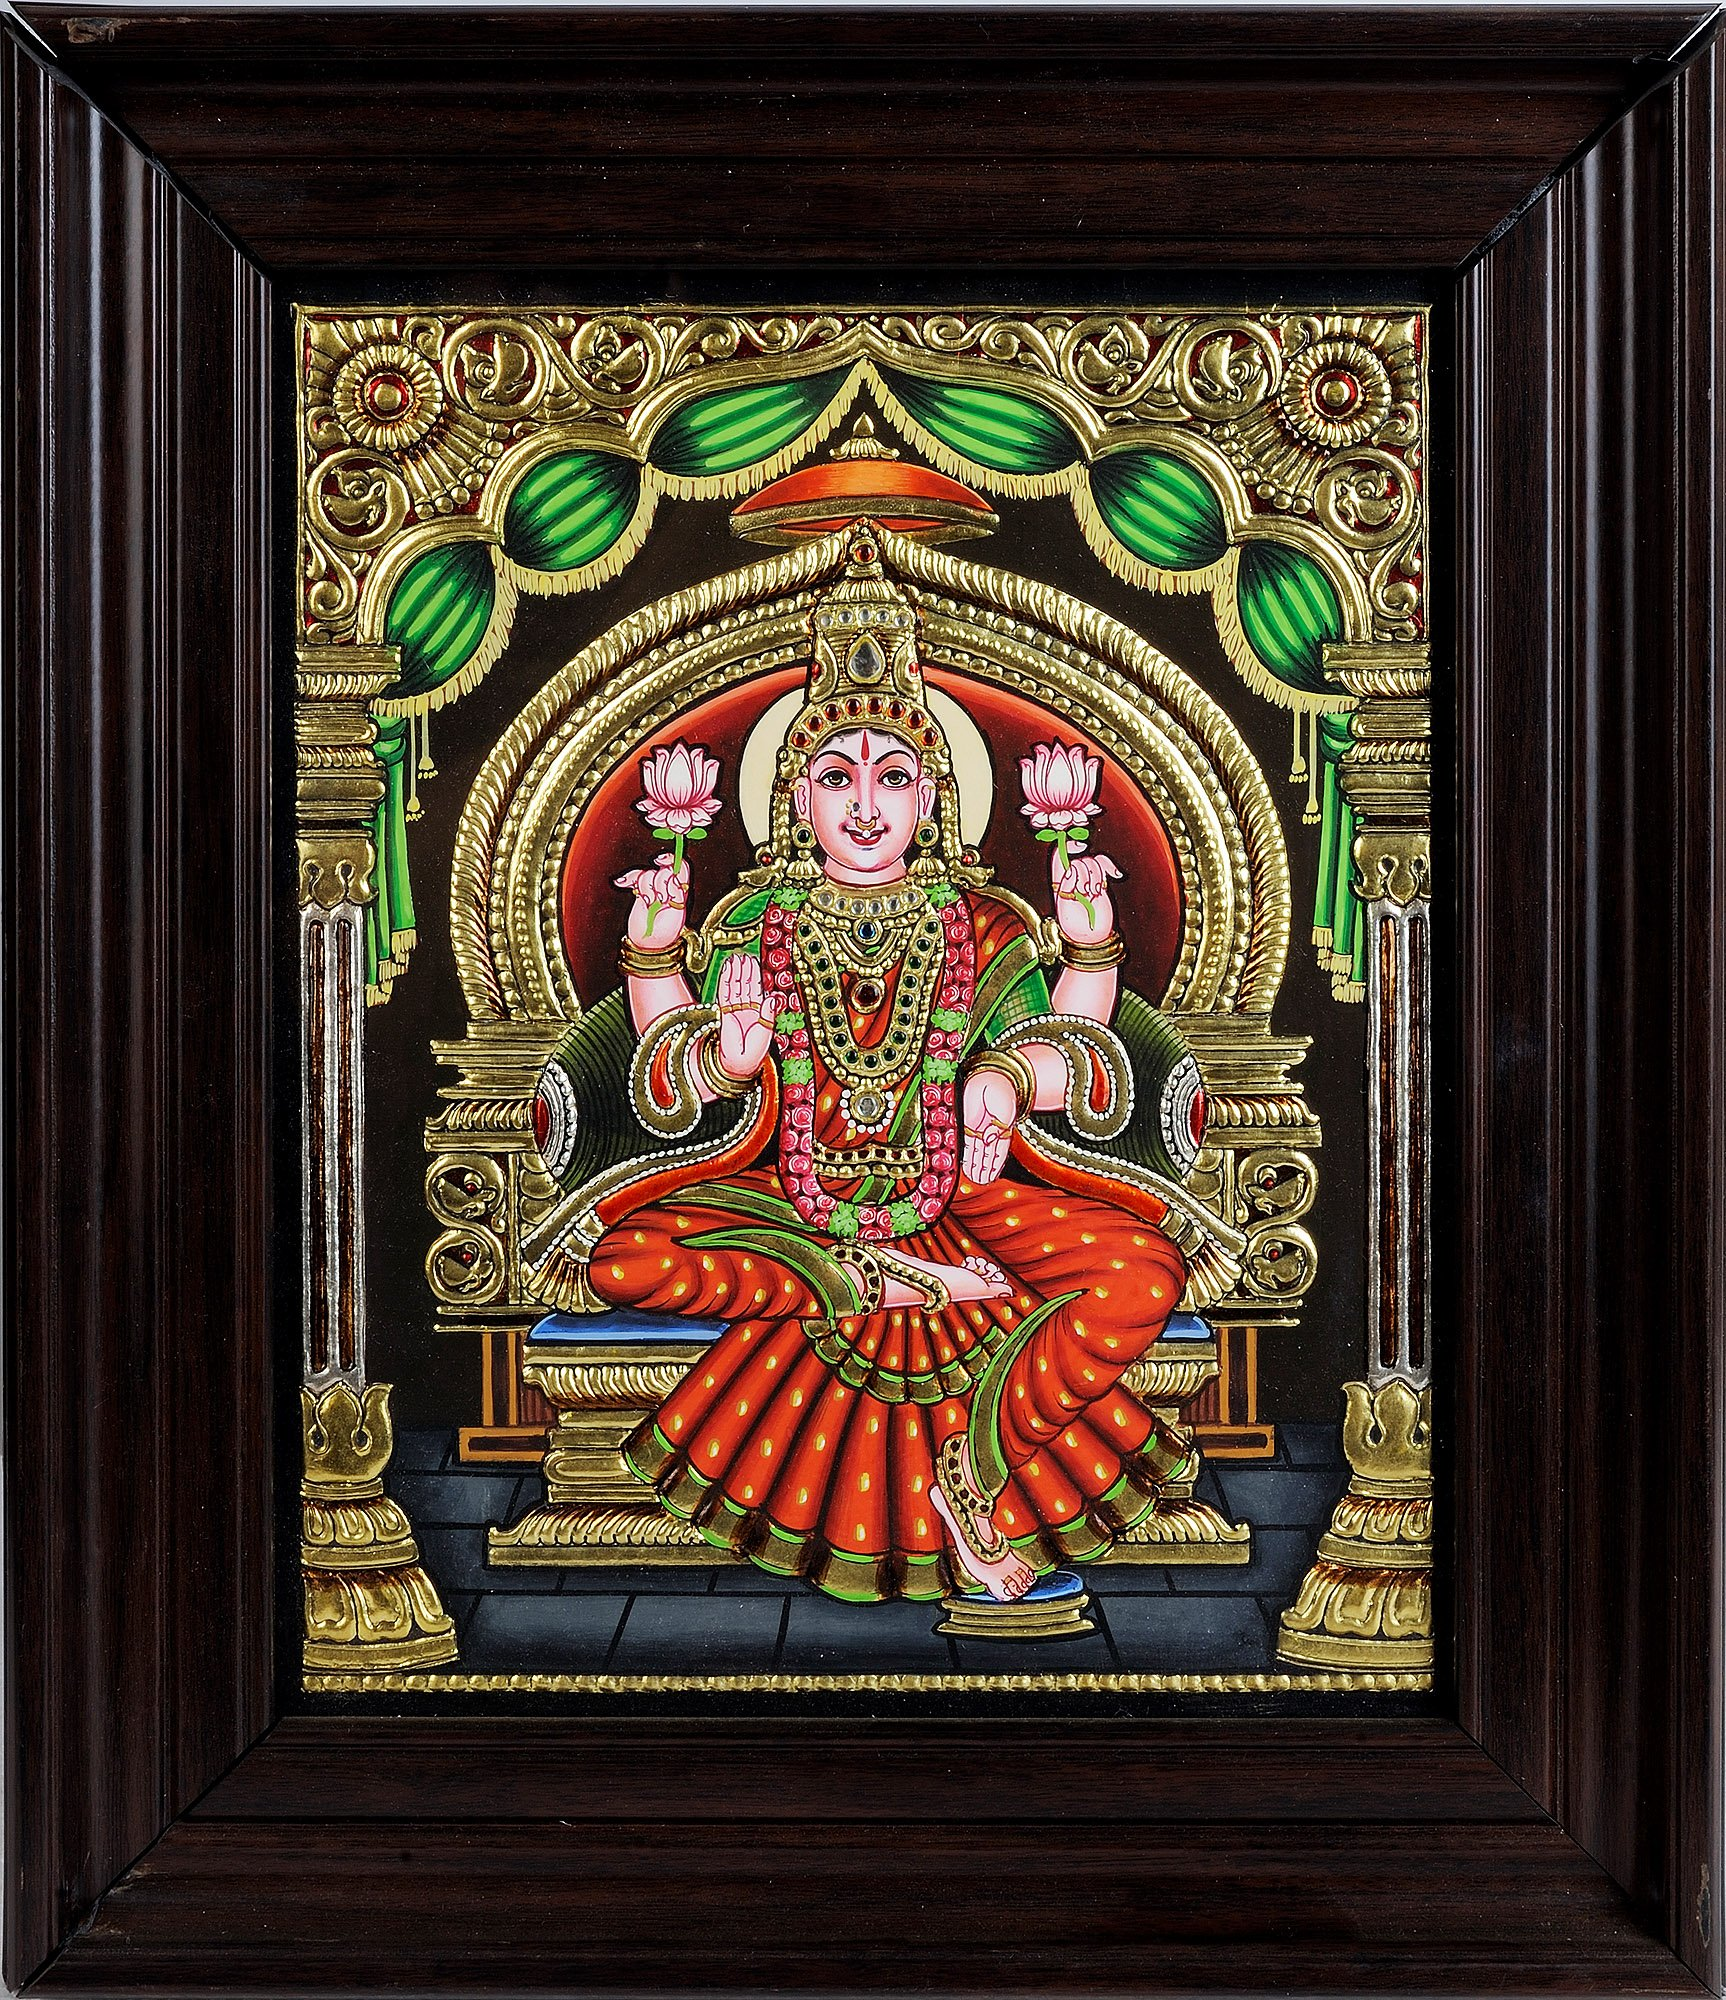 Goddess Lakshmi (Framed) - Tanjore Painting - Traditional Colors with 24 Karat Gold